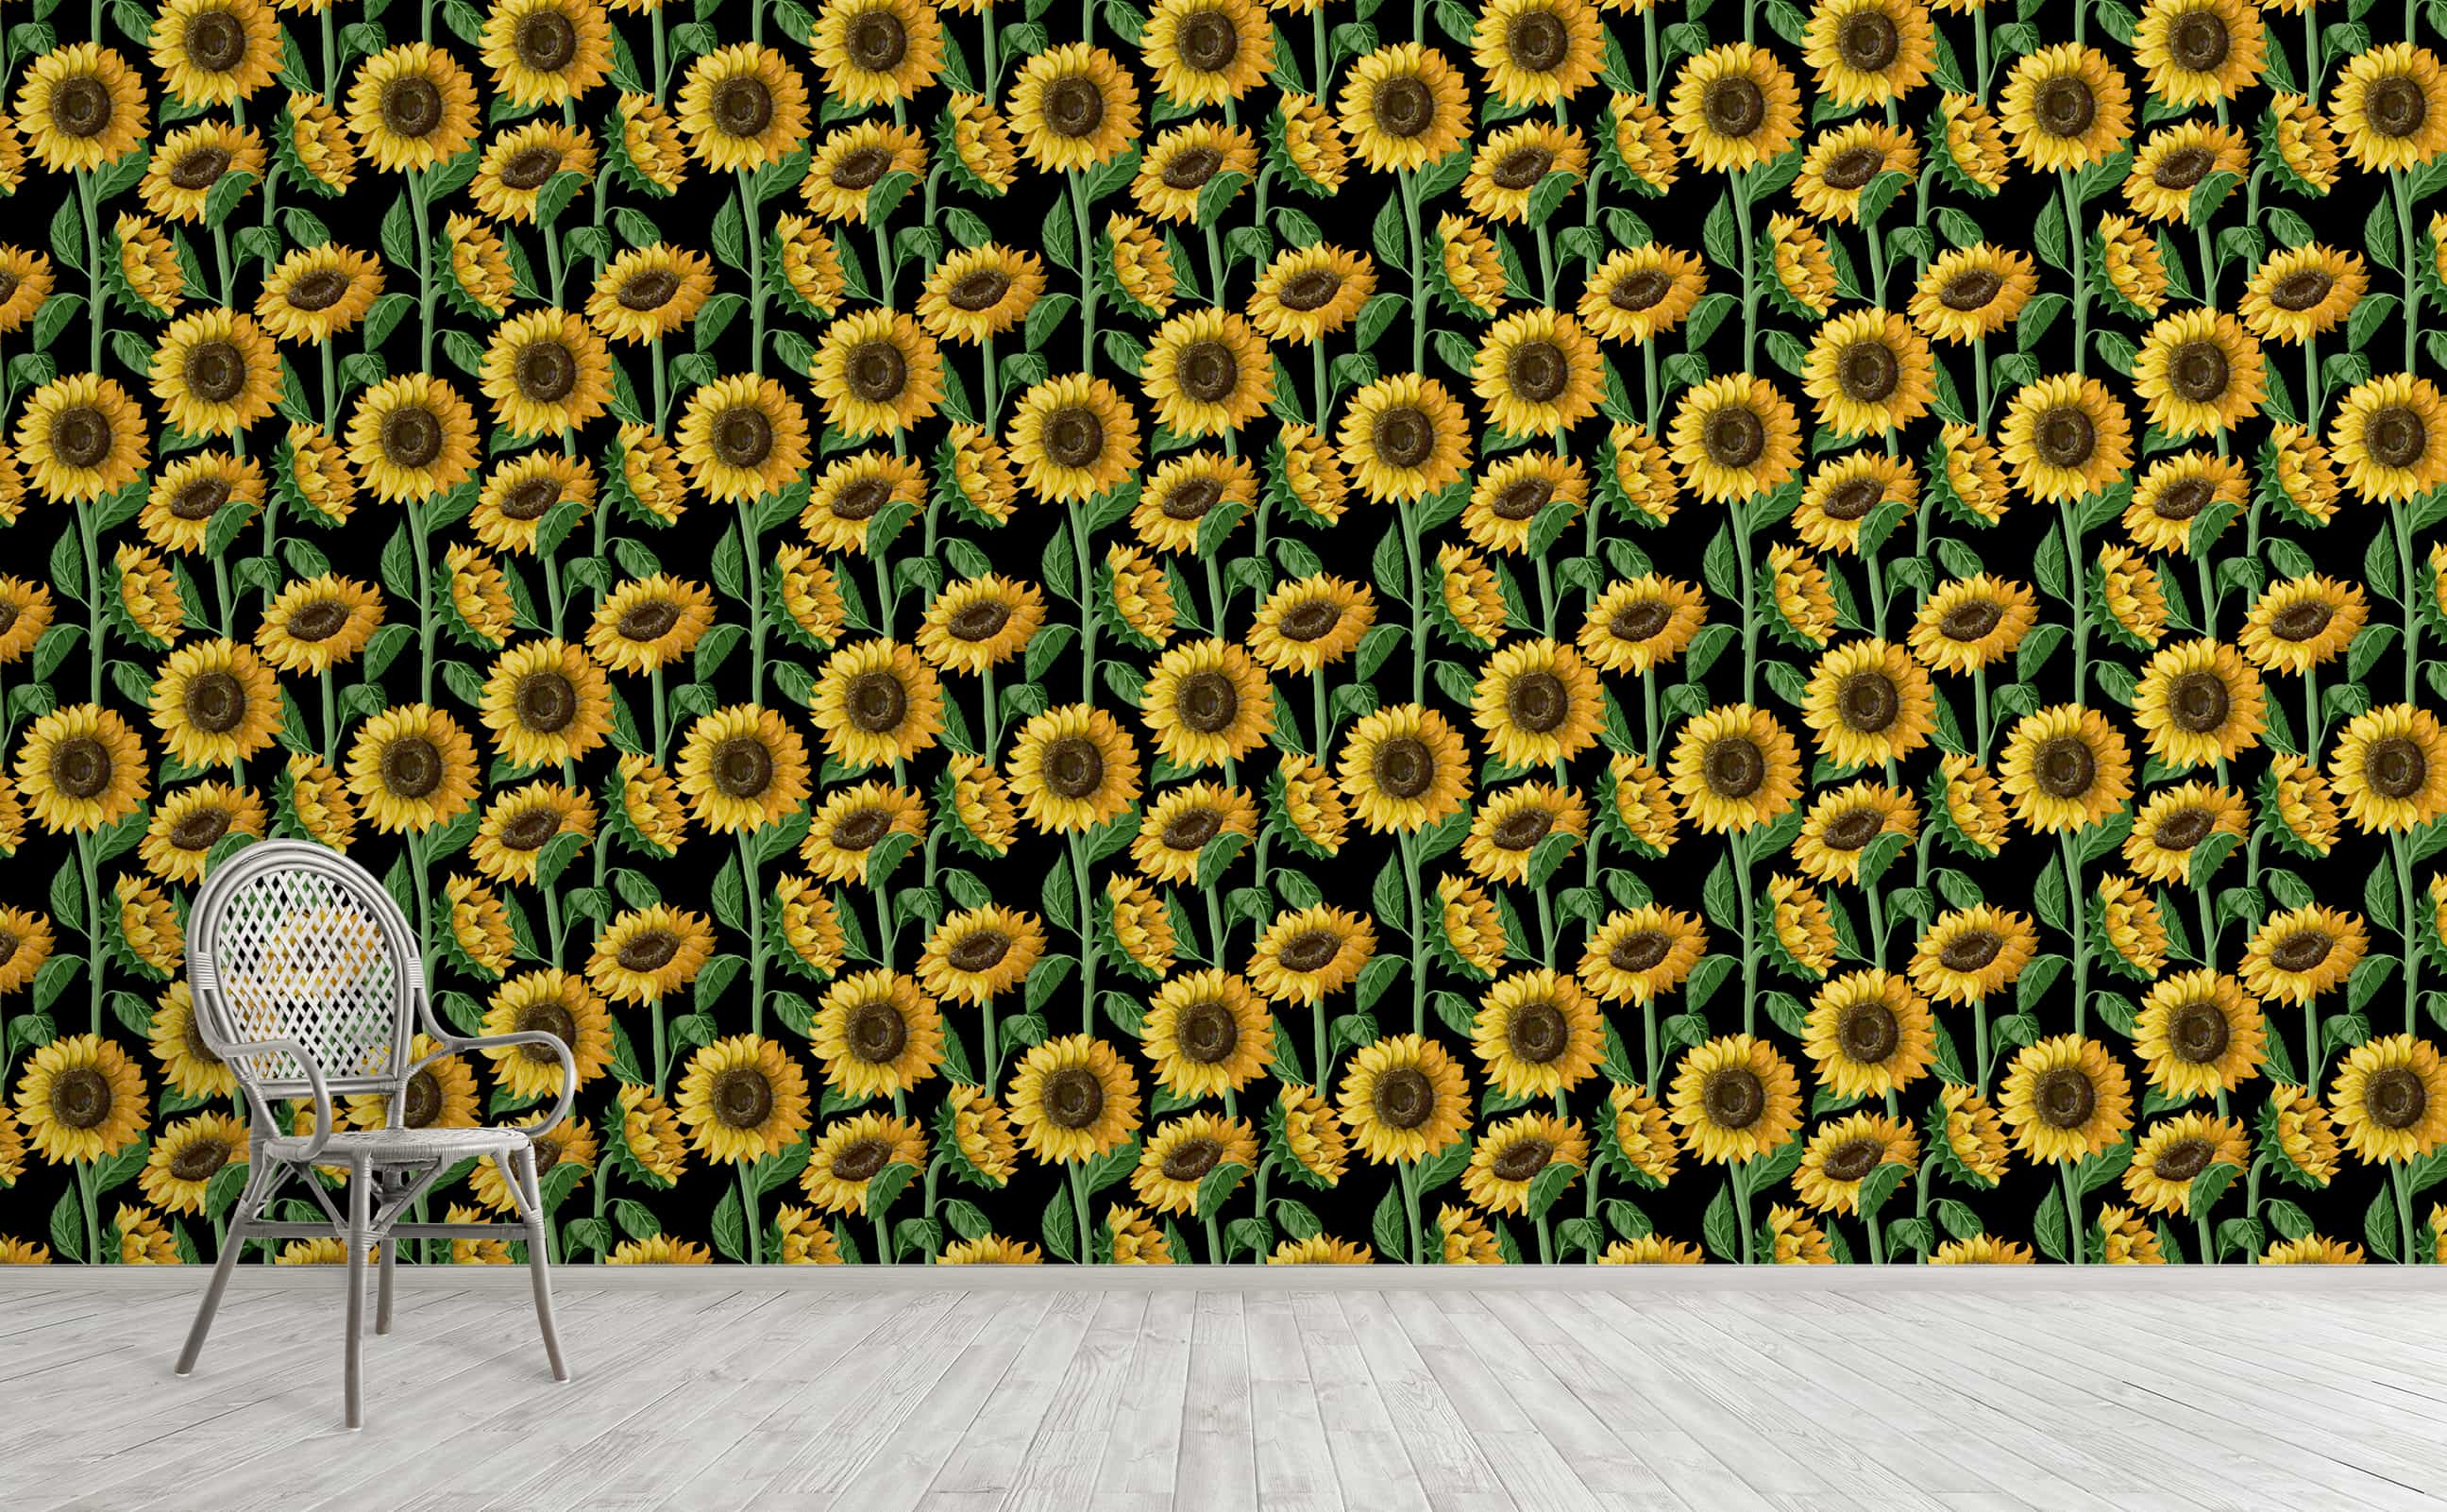 w0547 1s Full color sunflower seamless wallpaper black background Reach New Heights For Interior Walls 9b